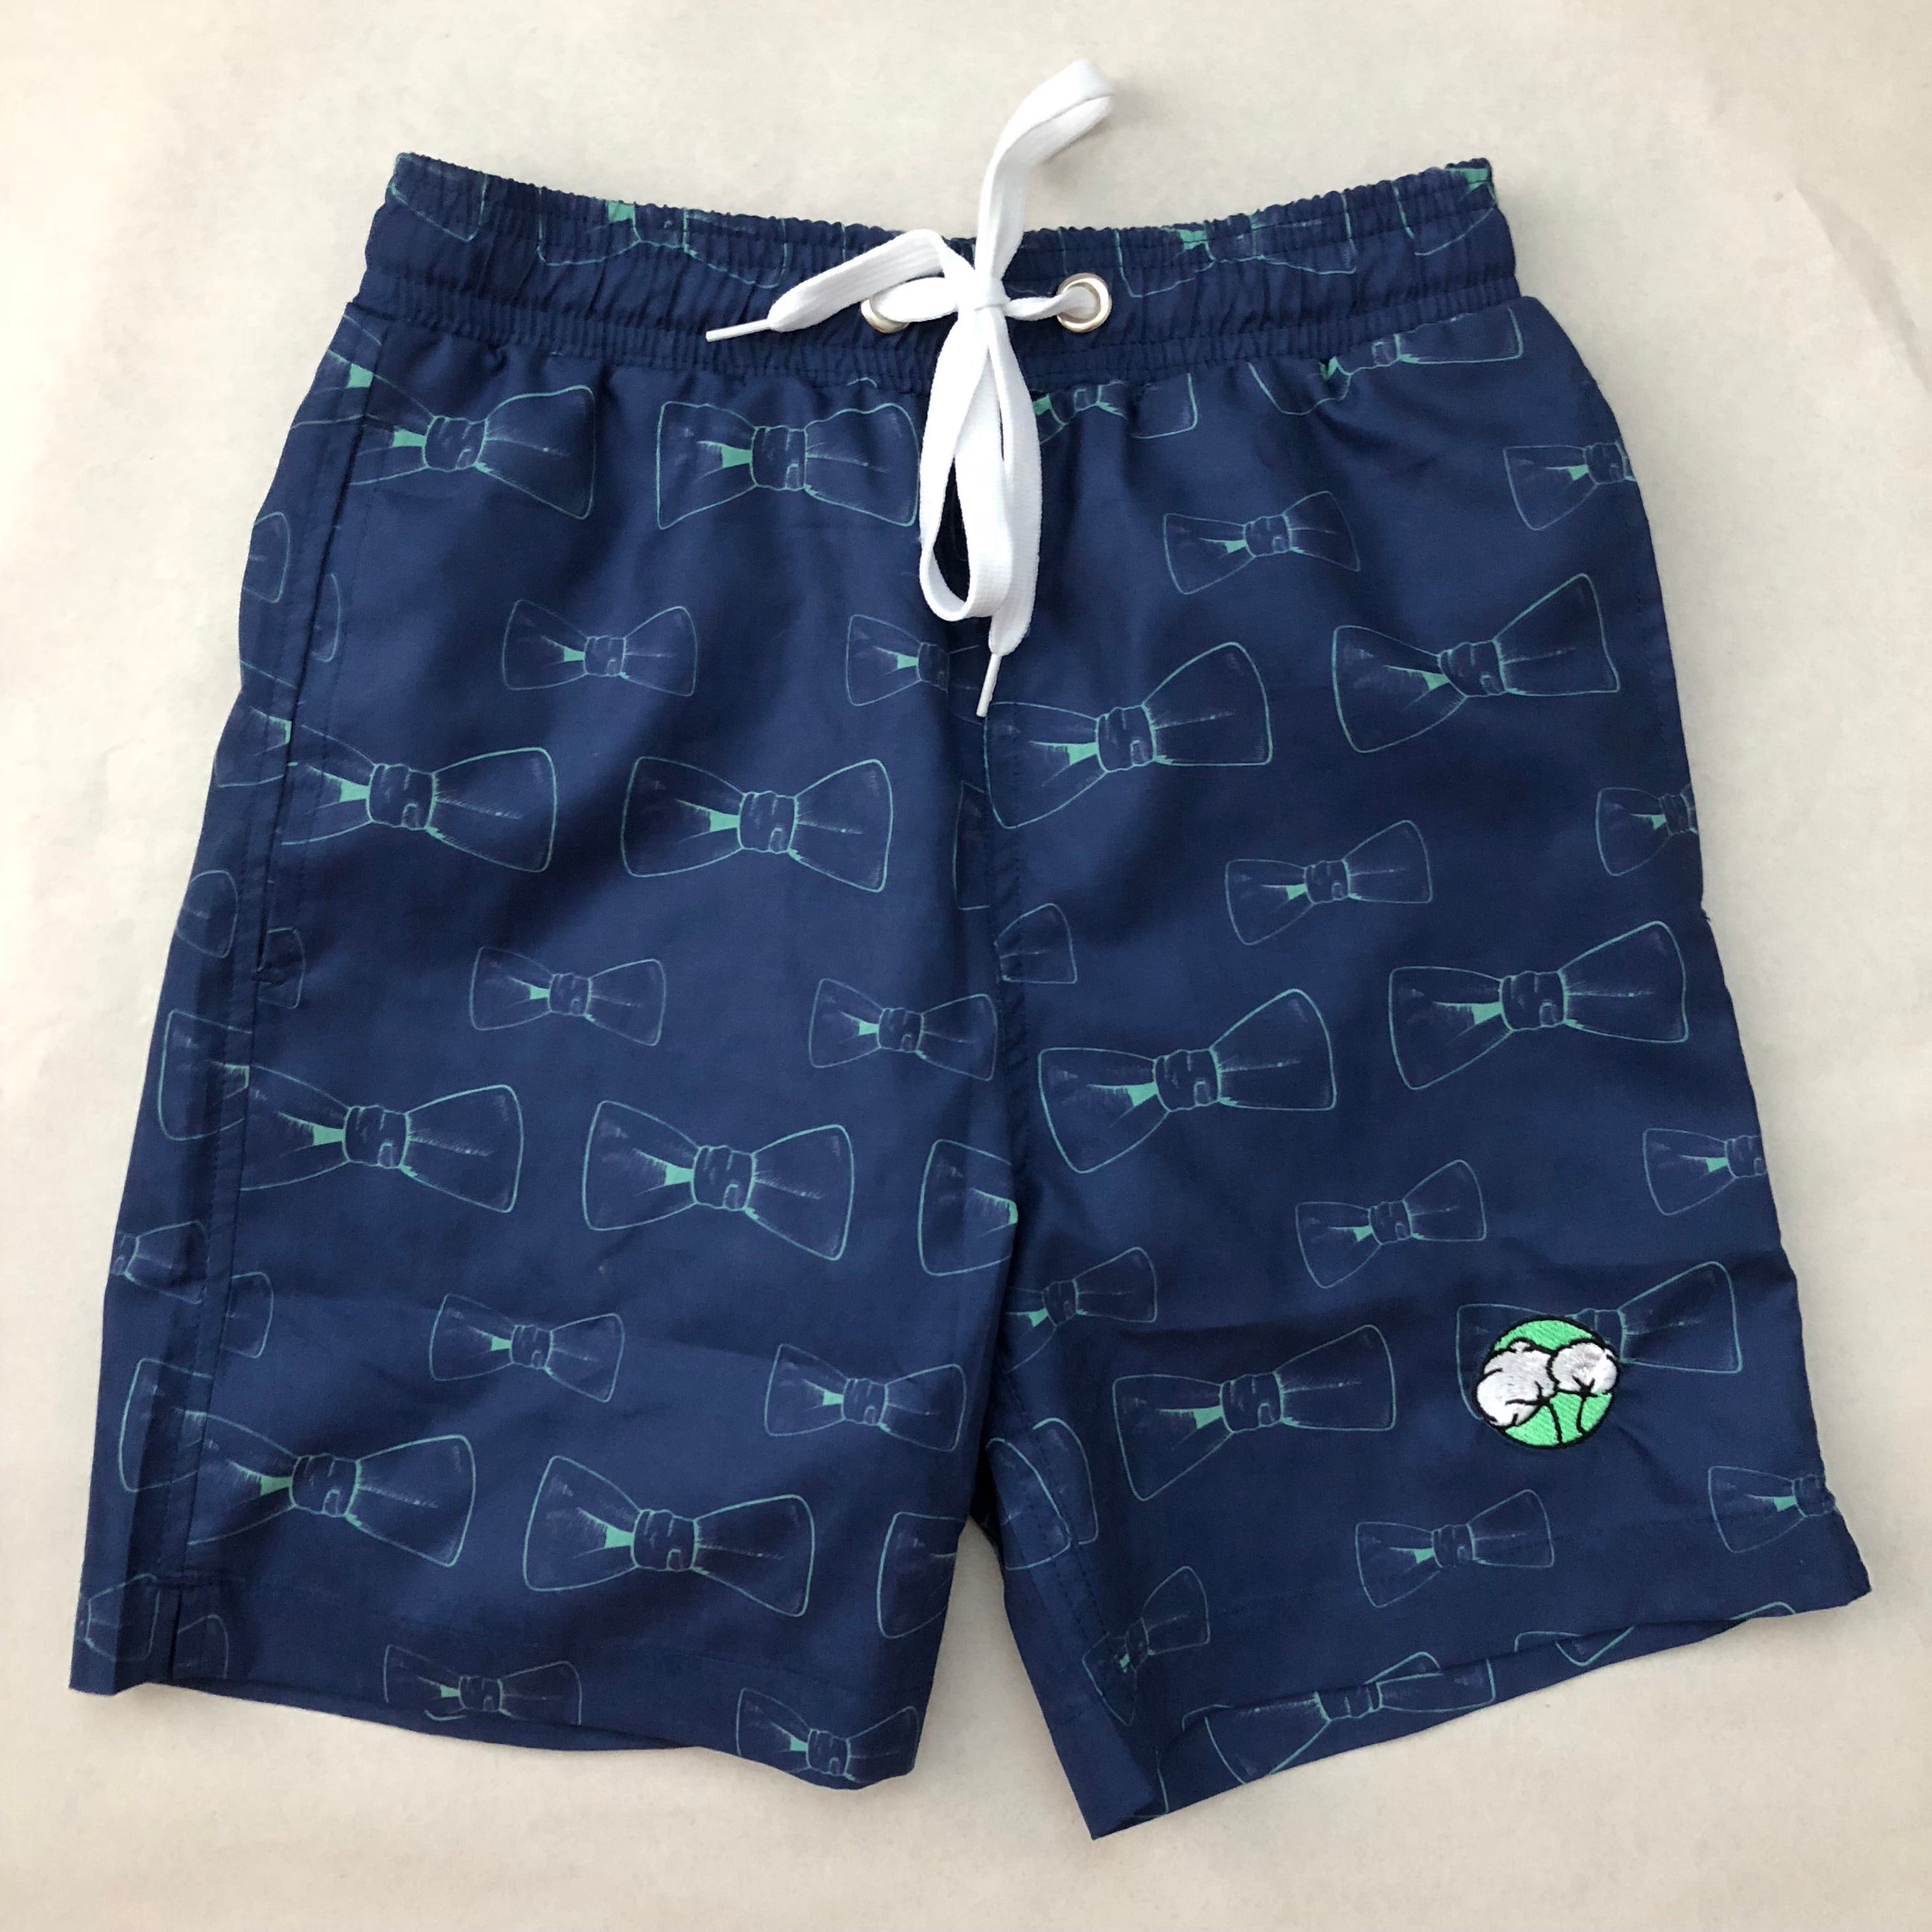 520979bf04 Toddler, Boys, and Mens Bowtie Swim Trunks - Youthful Cotton